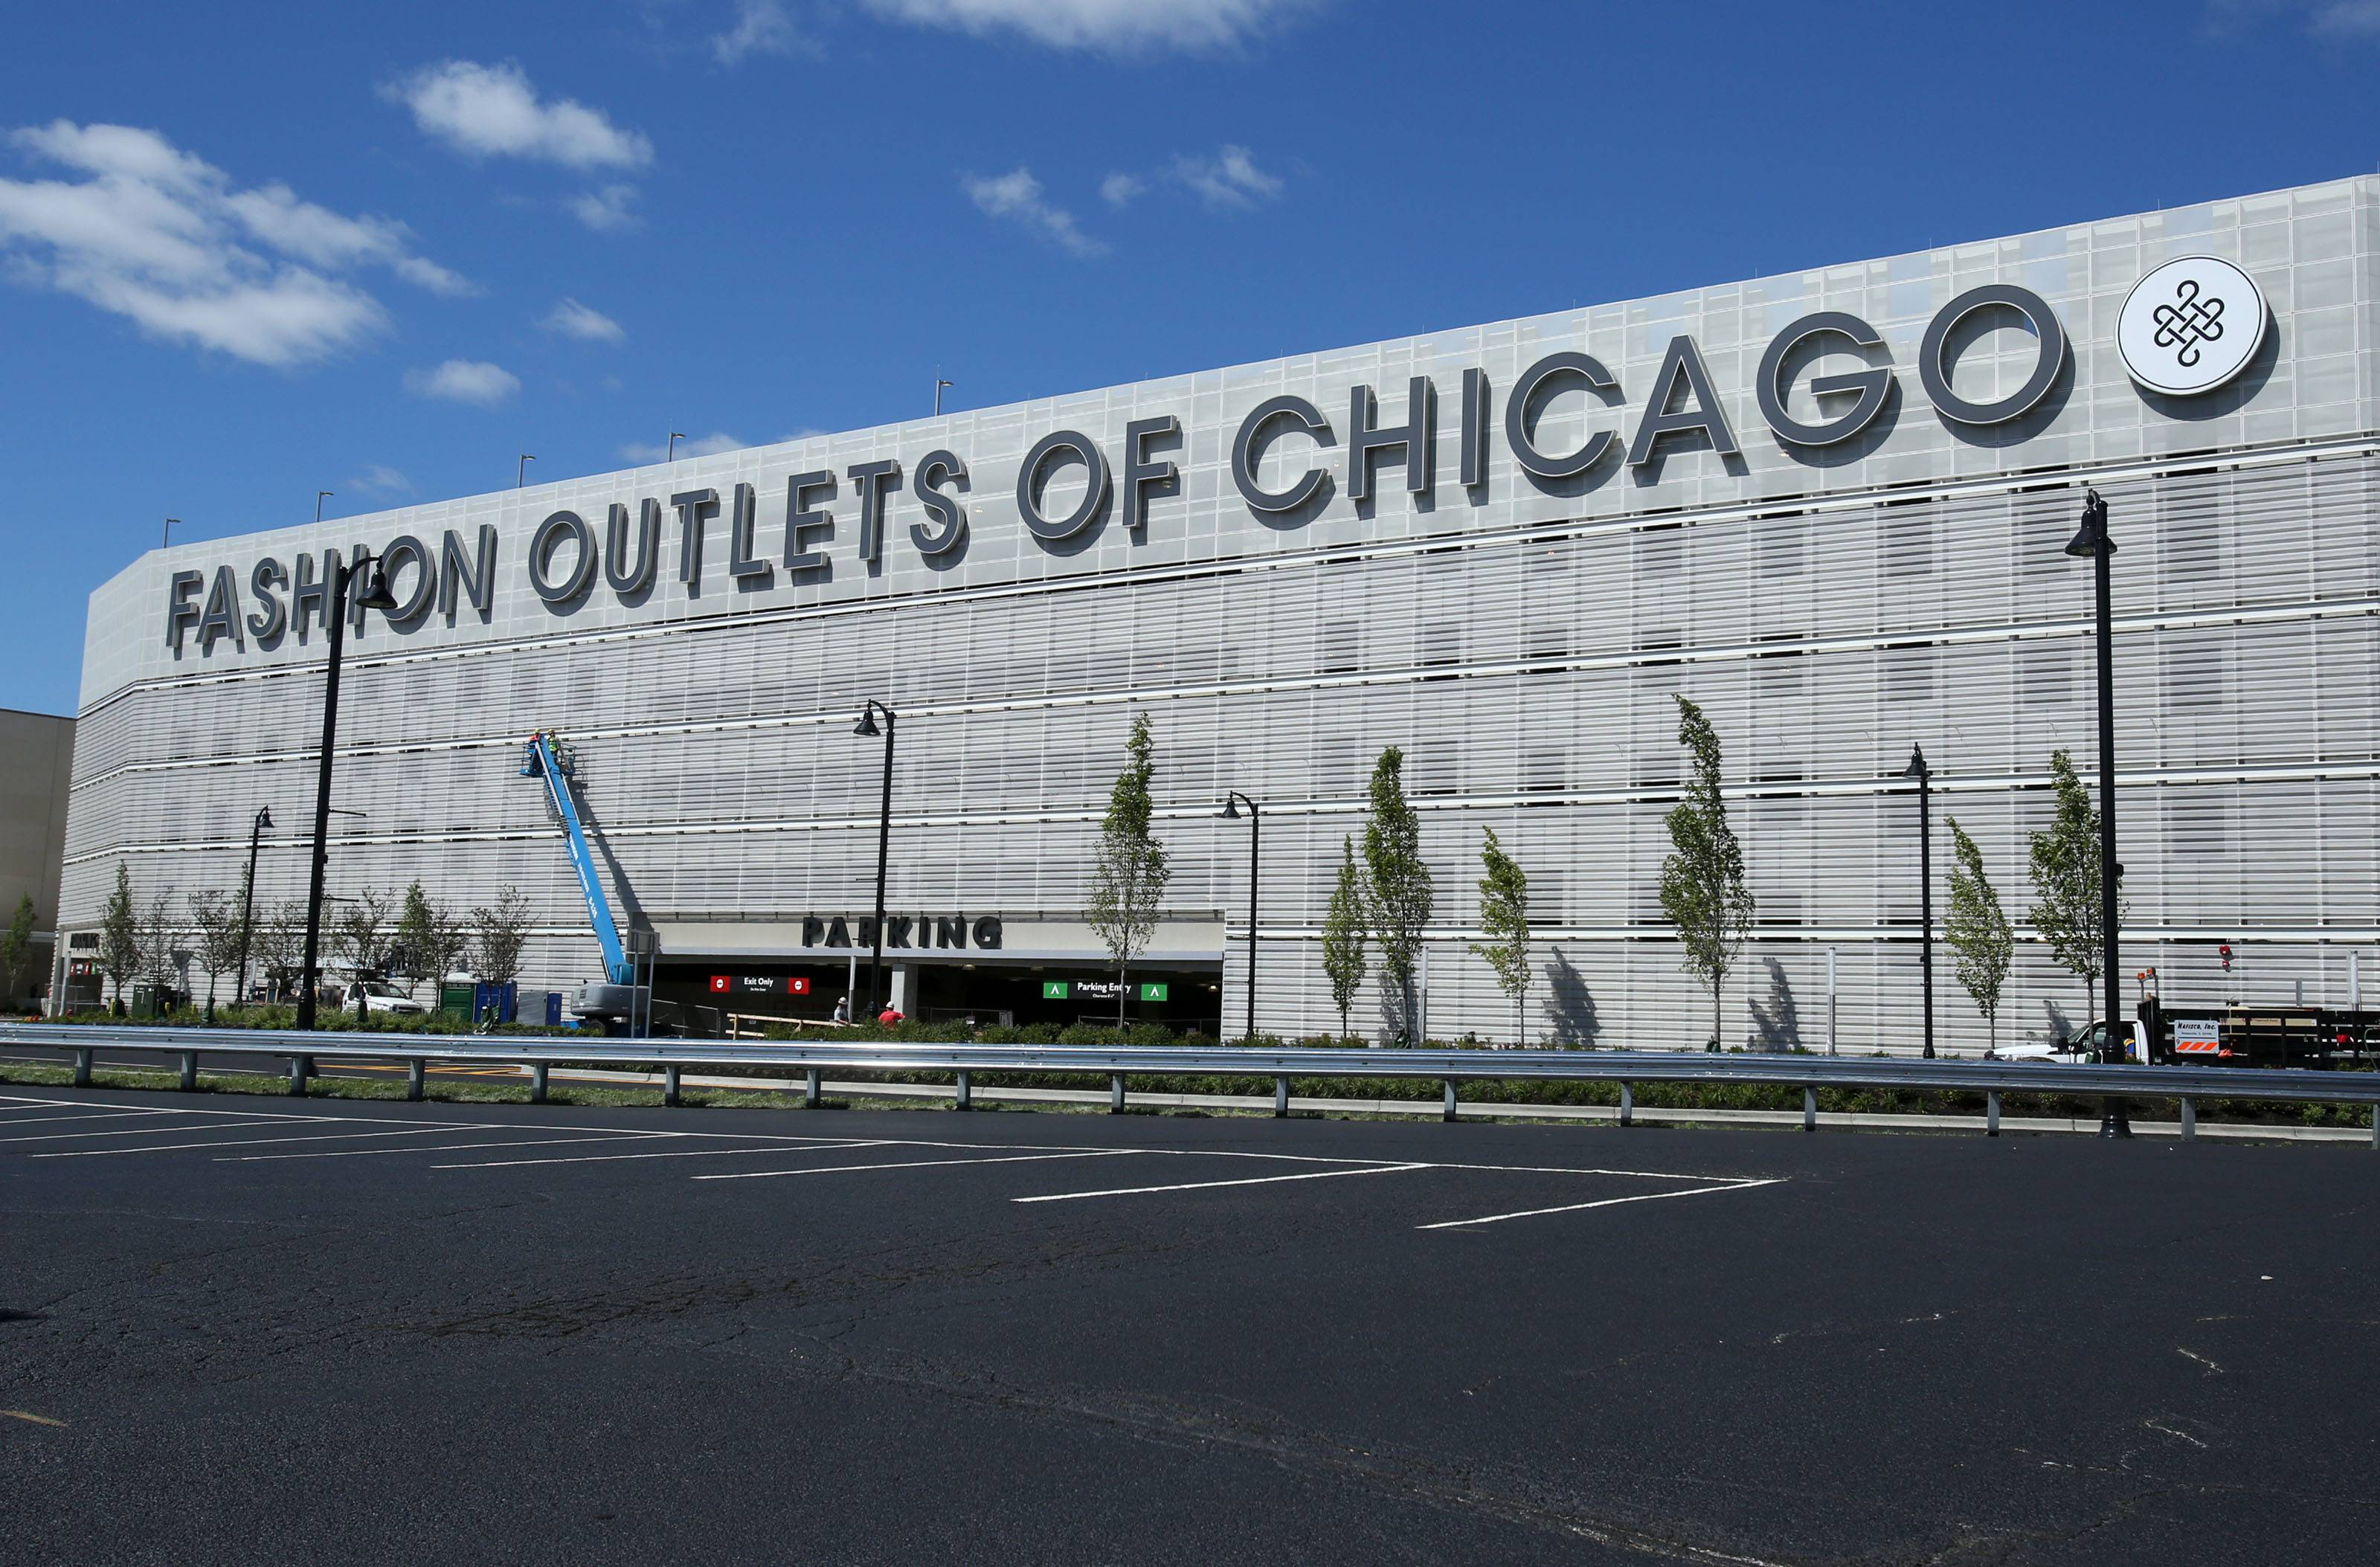 Best Shopping Malls in Chicago #1. Water Tower Place Pizza Hut, Asian Express, Meijer, Office Max, Walgreens near it. From Deyana's guidebook. Big shopping center that you can buy anything. From Weizhe's guidebook # Orland Square Shopping Shopping Malls. Orland Square Dr.